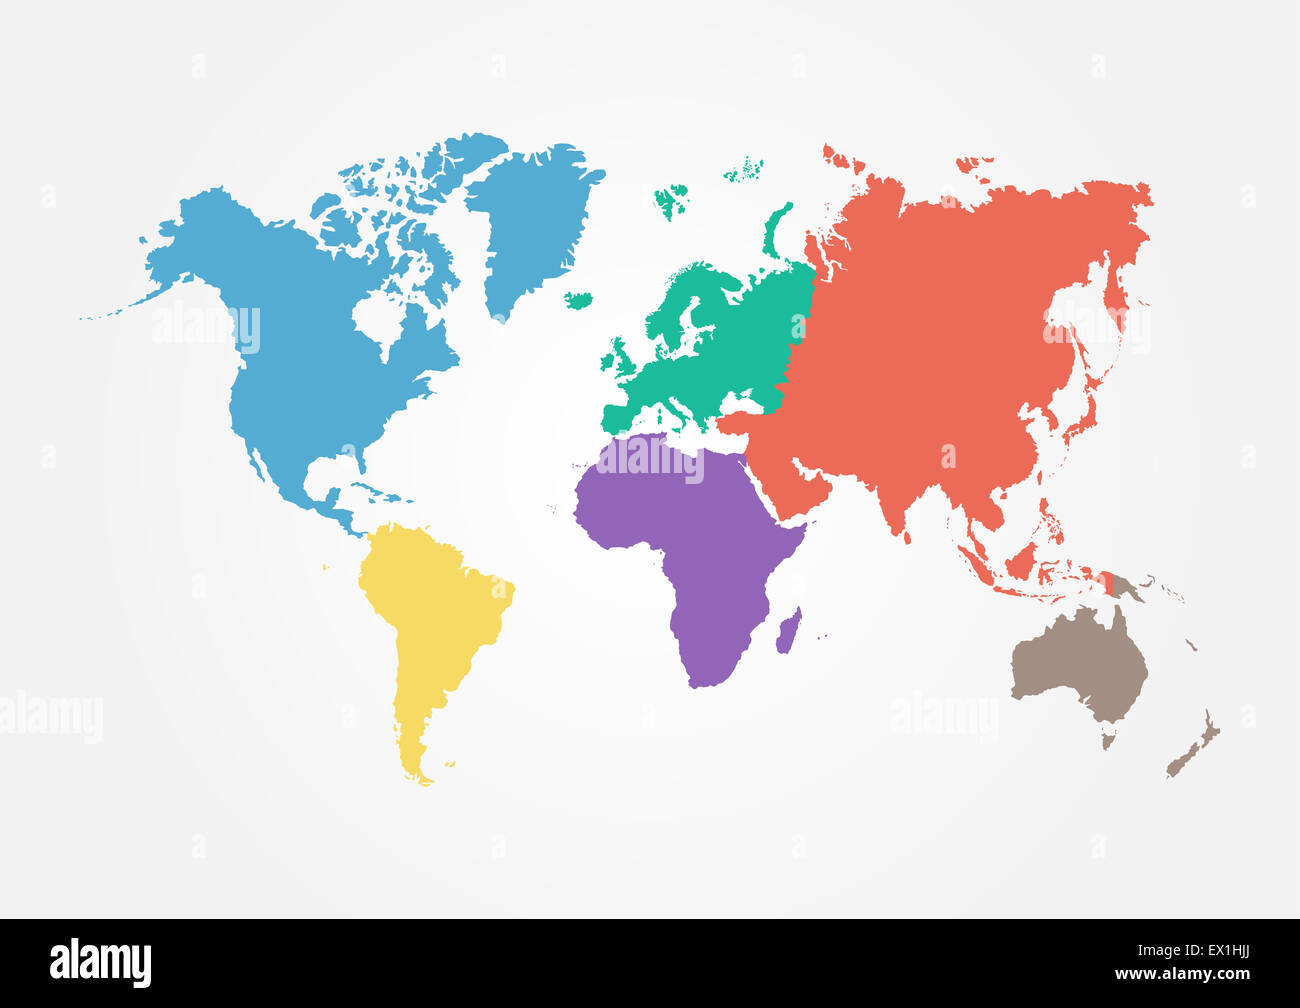 Amazing Vector World Map With Continent In Different Color ( Flat Design )   Stock  Image